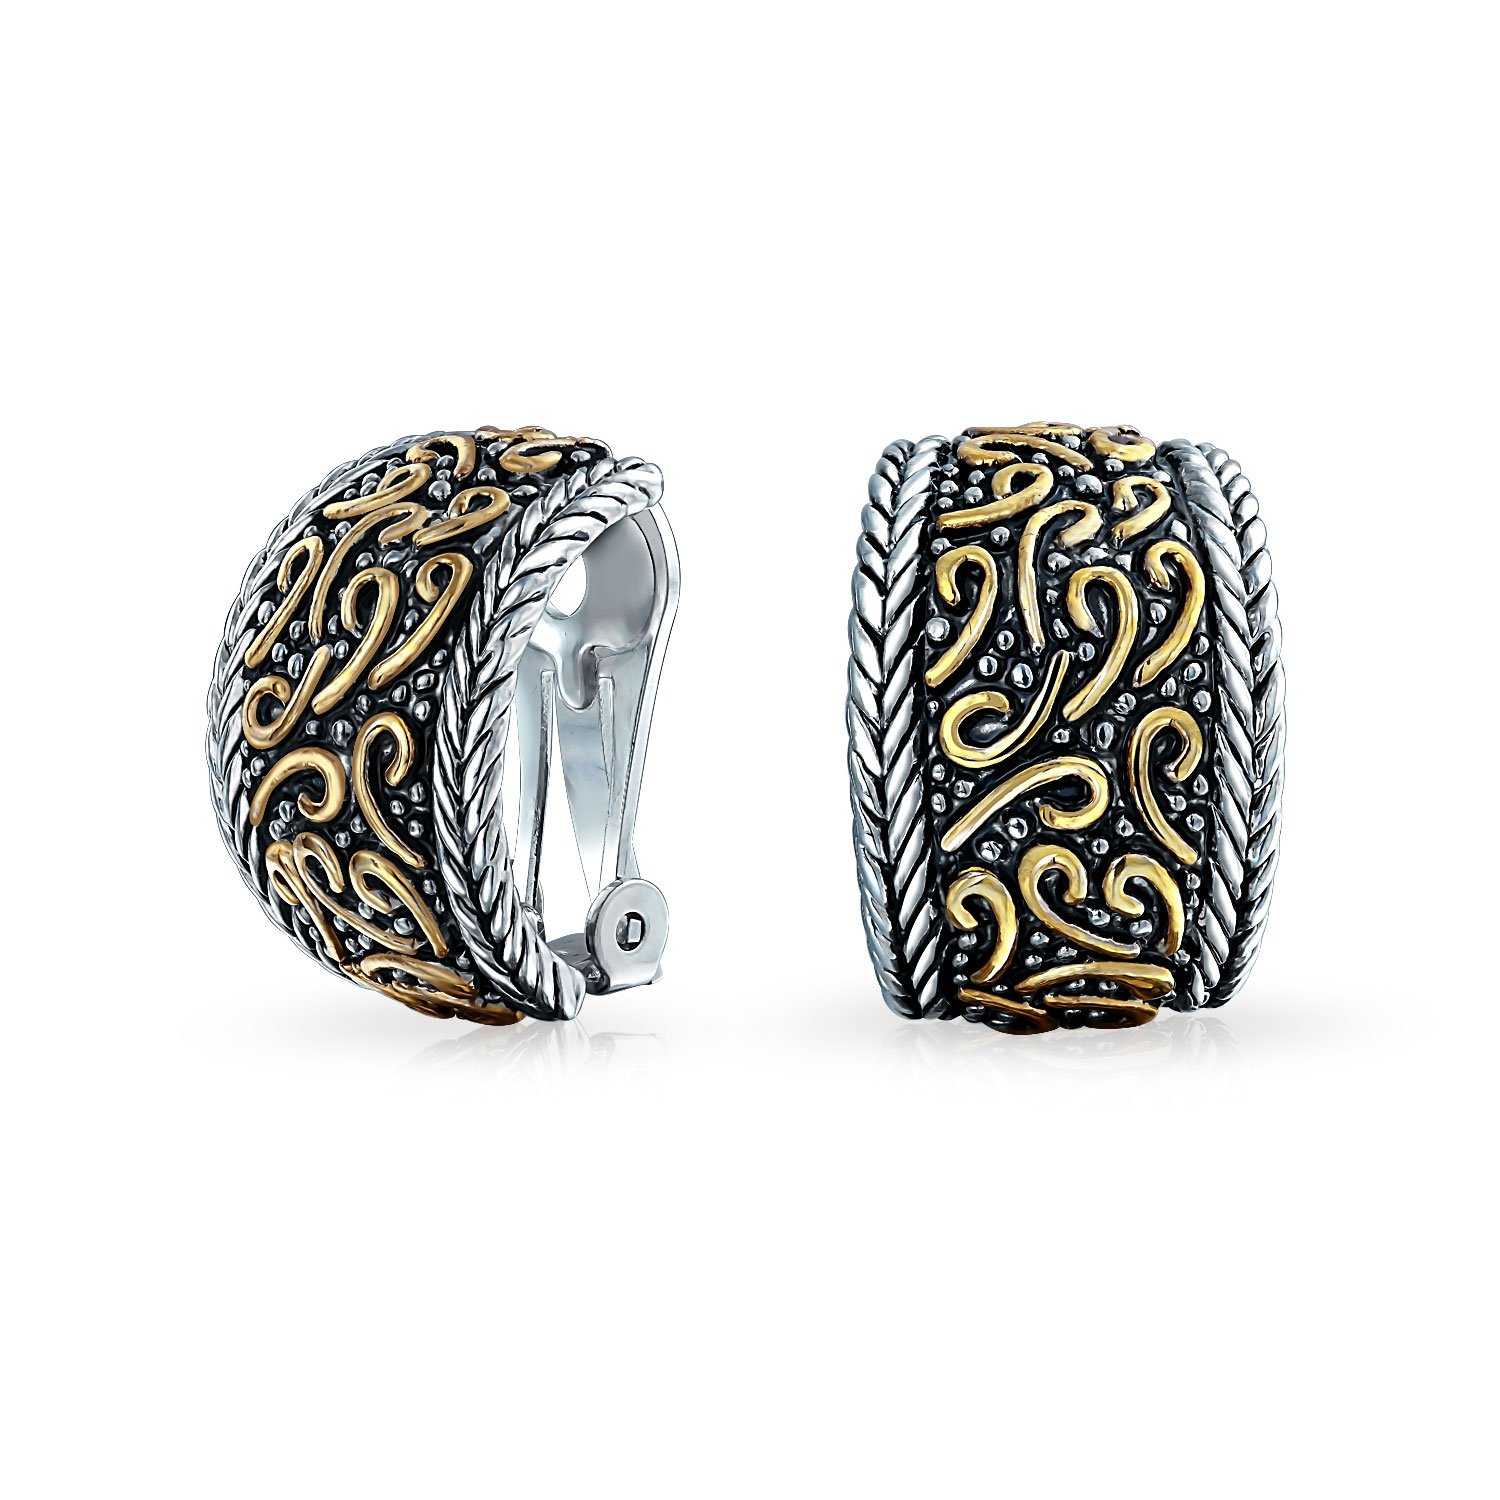 Huggie Hoop Clip On Earrings Bali Style Swirl Two Tone Rhodium Plated Gold Plated Brass